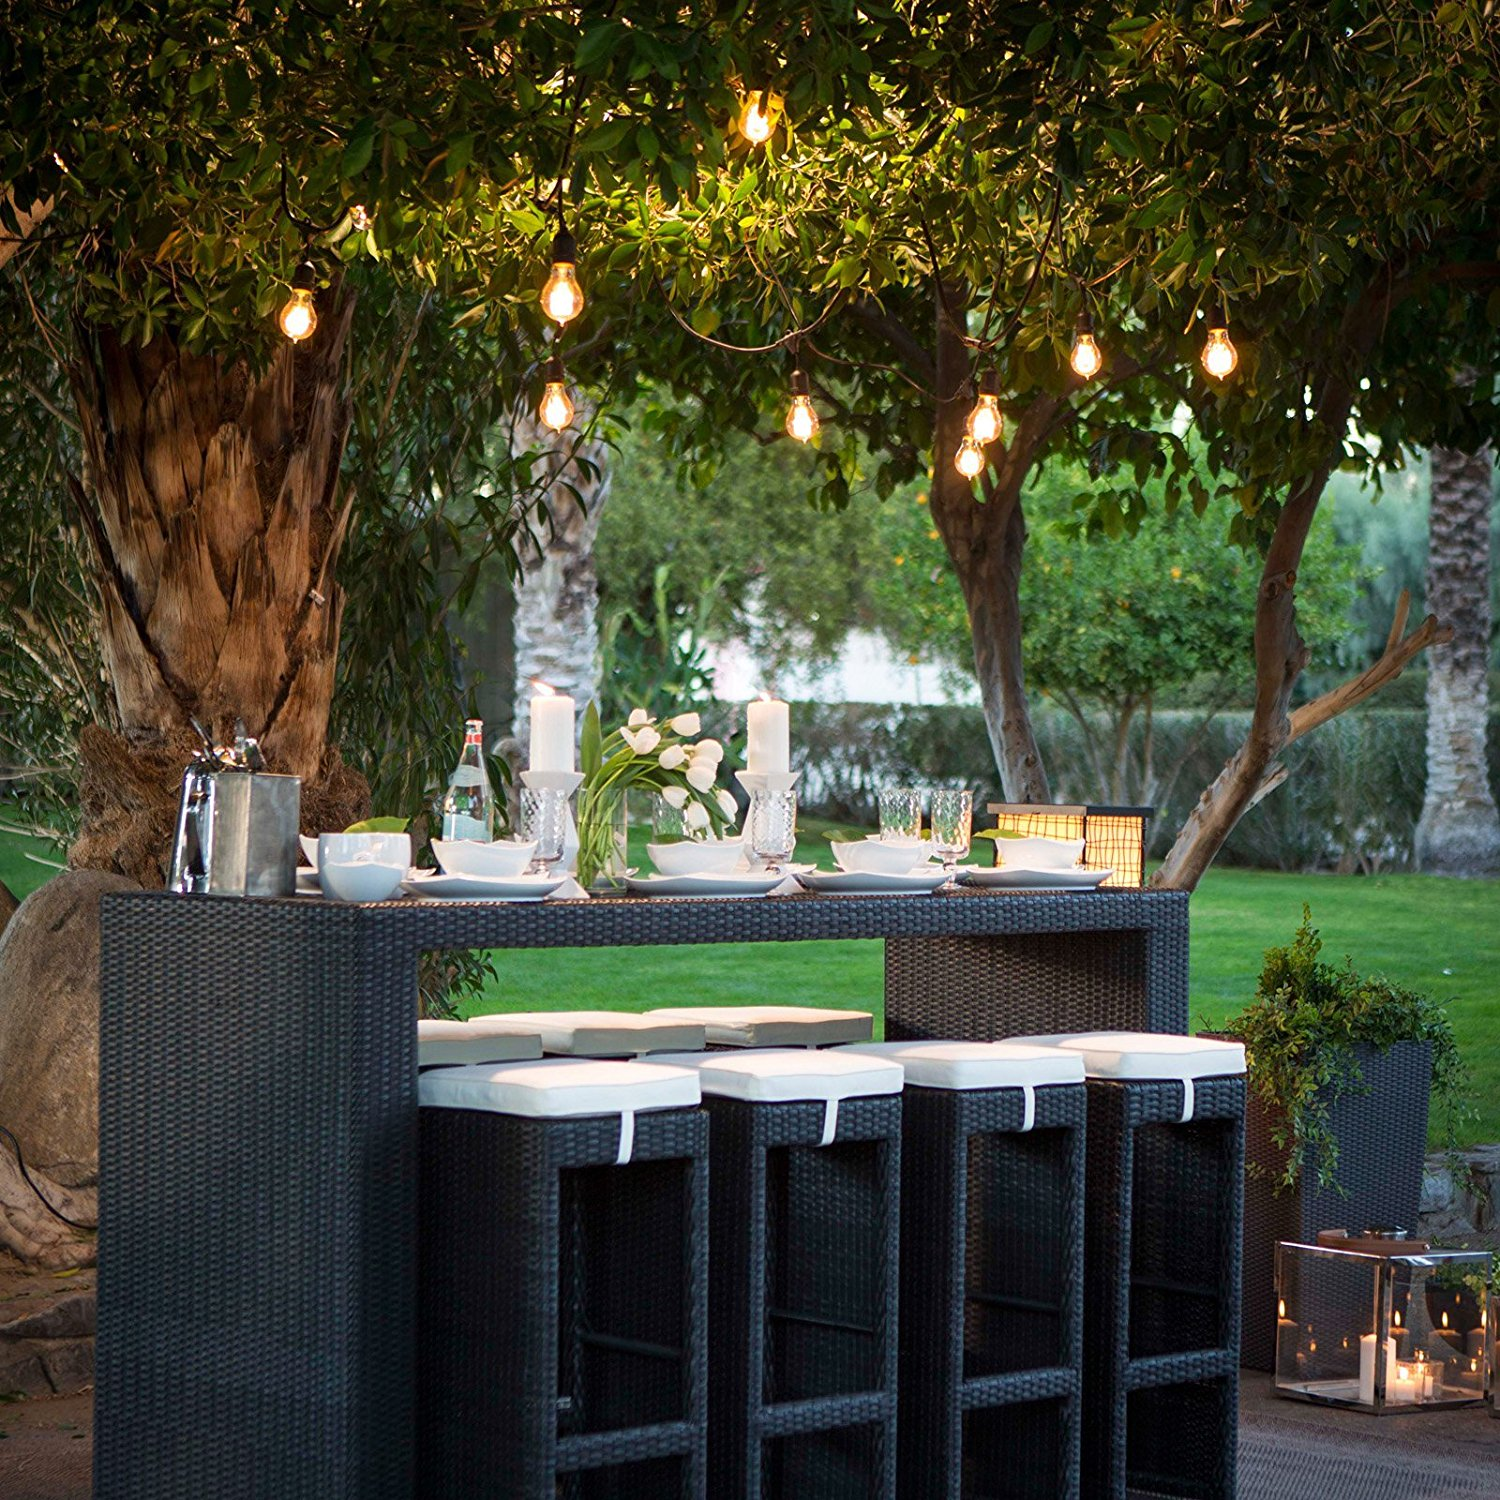 Outdoor Patio String Lights For Parties, Weddings  Perfect For Gazebo,  Decks, Patio